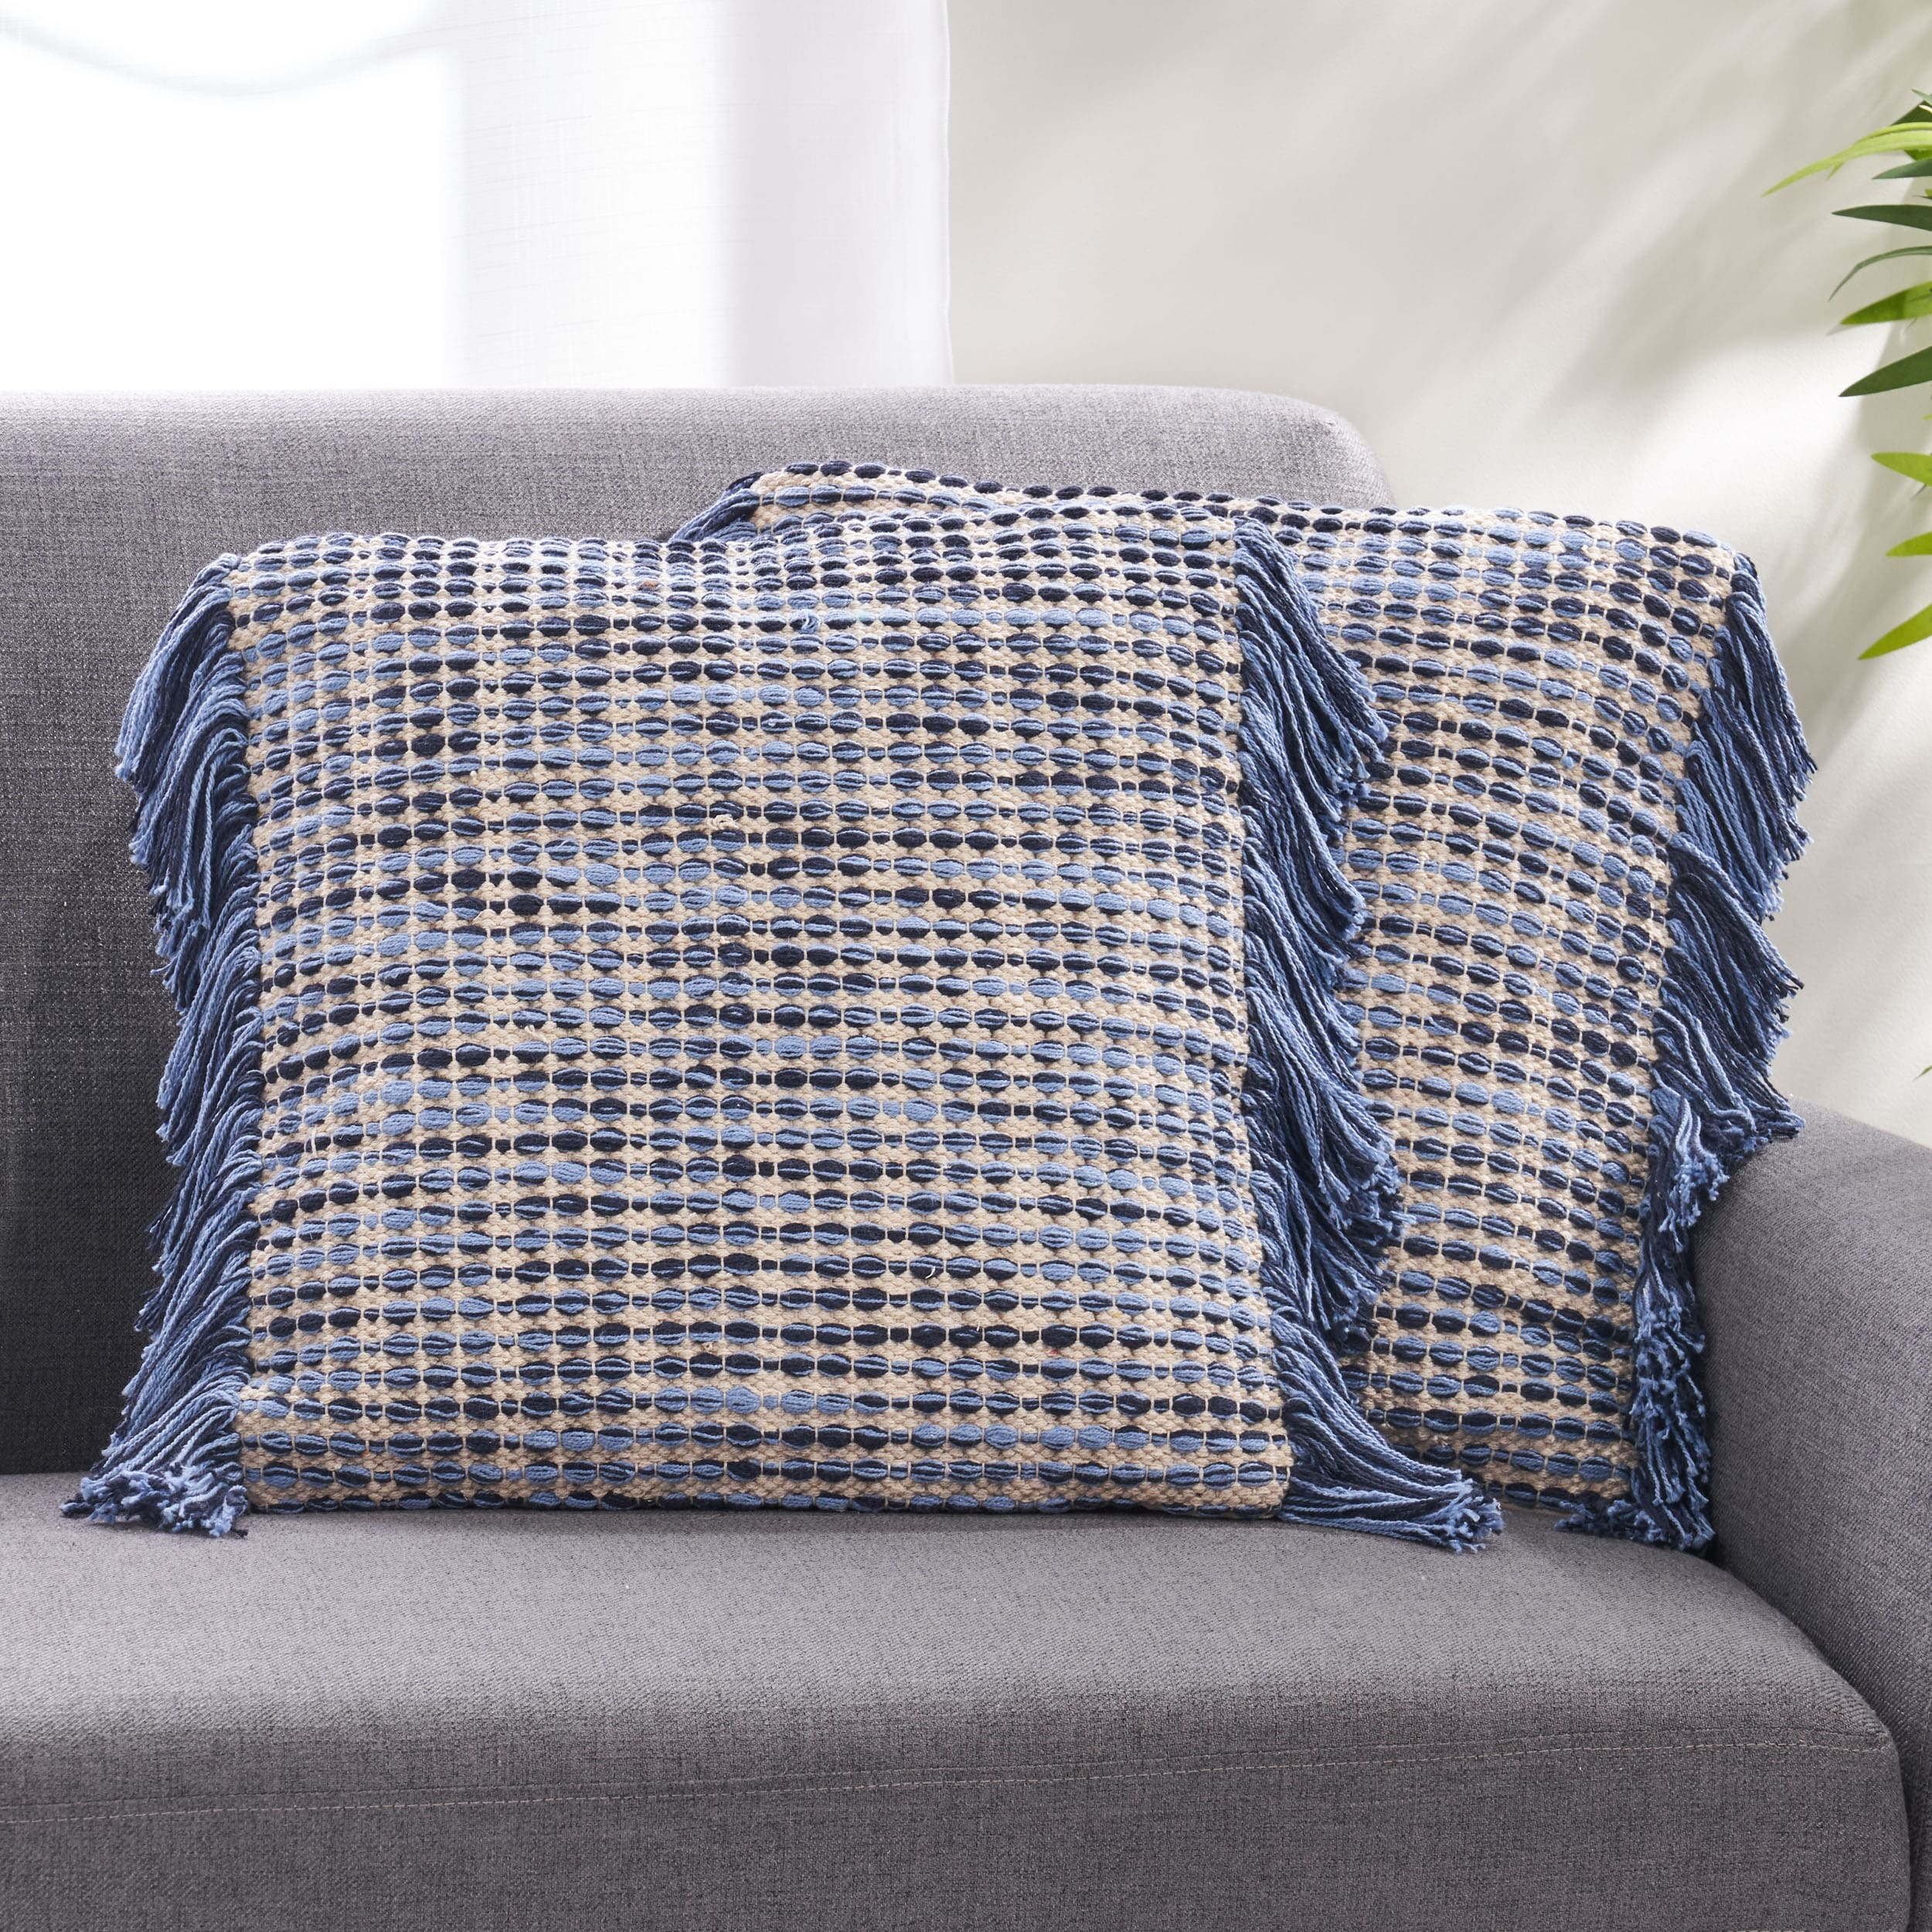 Shop Black Friday Deals On Dunibar Hand Loomed Boho Pillow Cover By Christopher Knight Home Overstock 31111649 Blue Natural Single